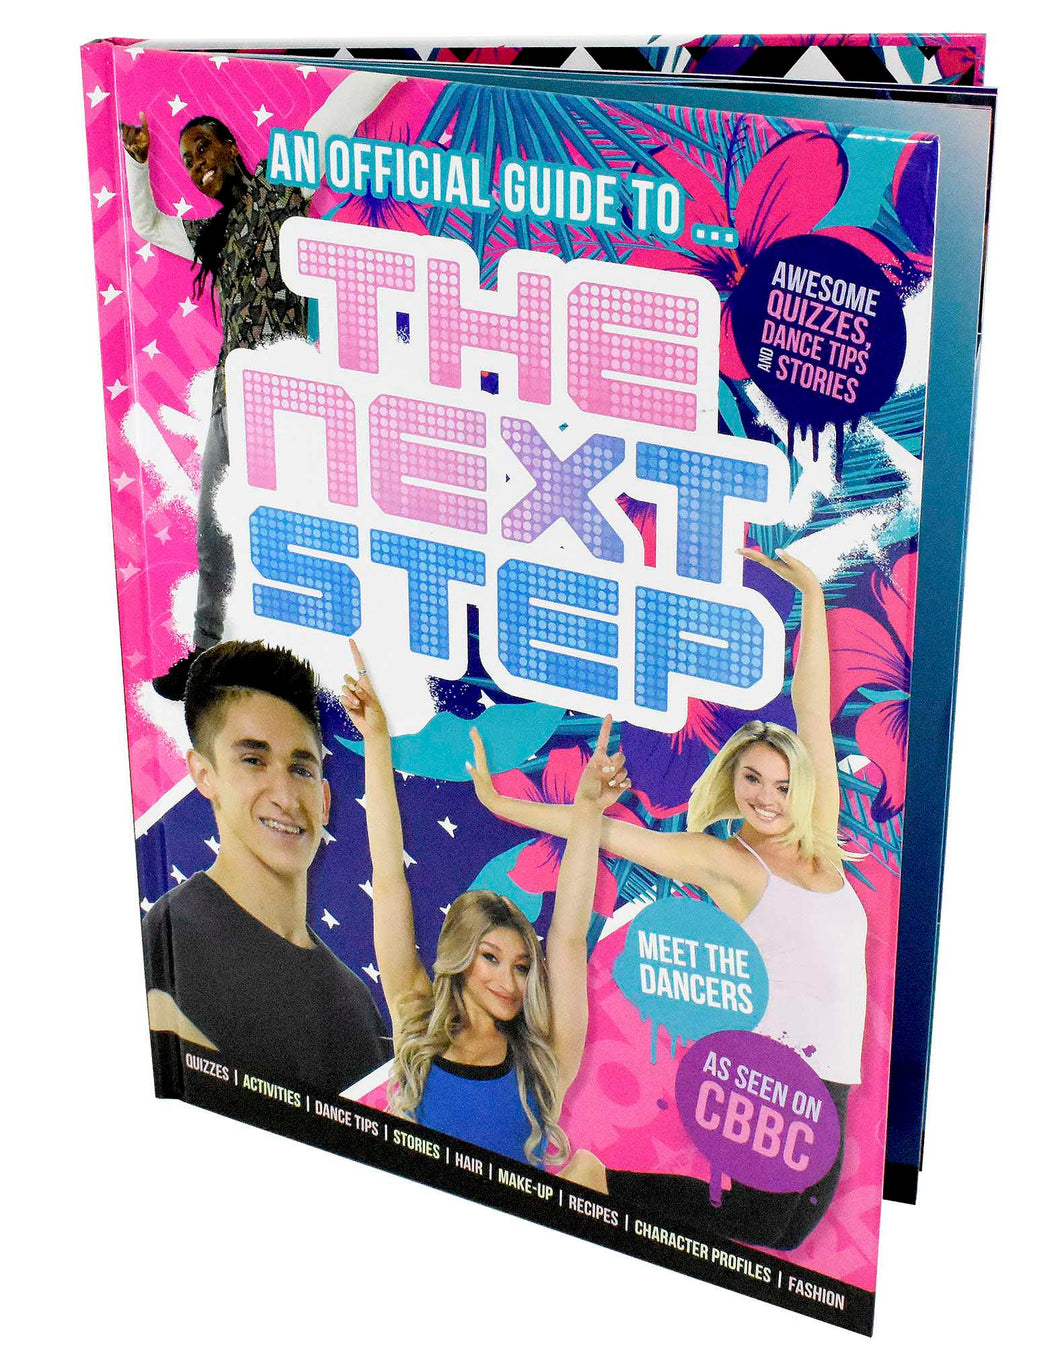 An Official Guide to... THE NEXT STEP!